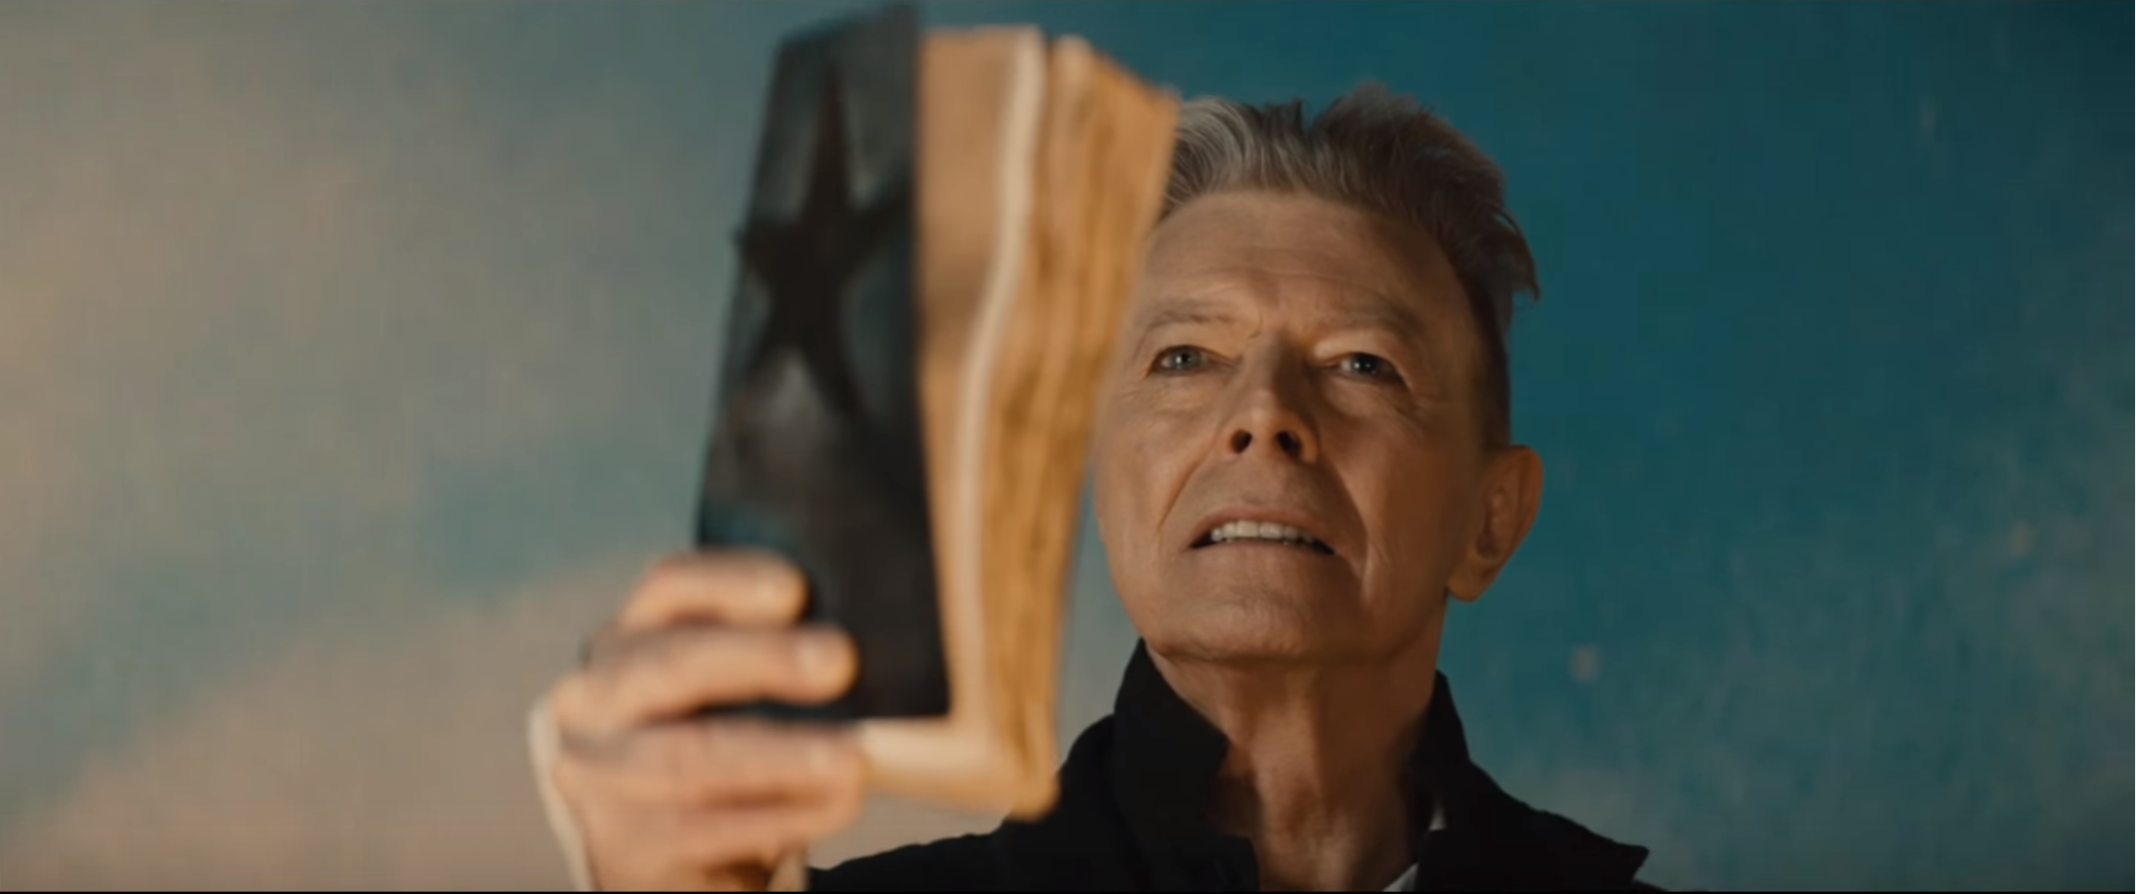 The David Bowie - Blackstar ★ Trailer Is Here And It Gets Weird